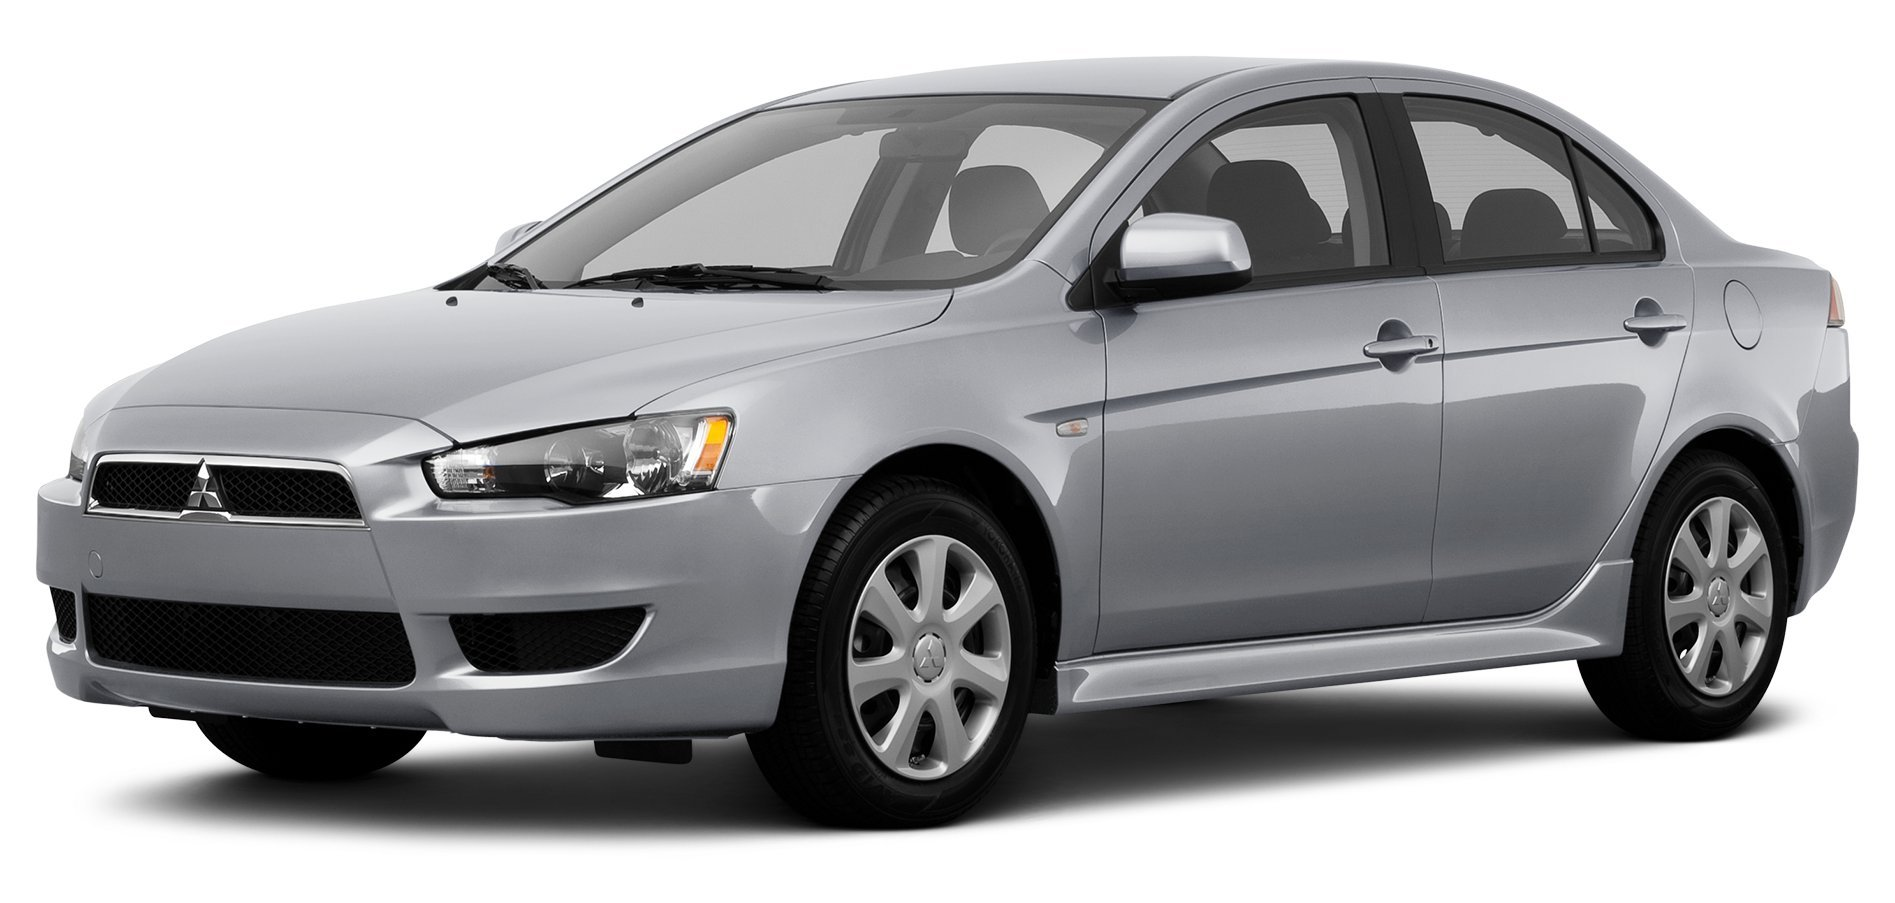 2013 Mitsubishi Lancer DE, 4-Door Sedan Manual Transmission Front Wheel  Drive ...